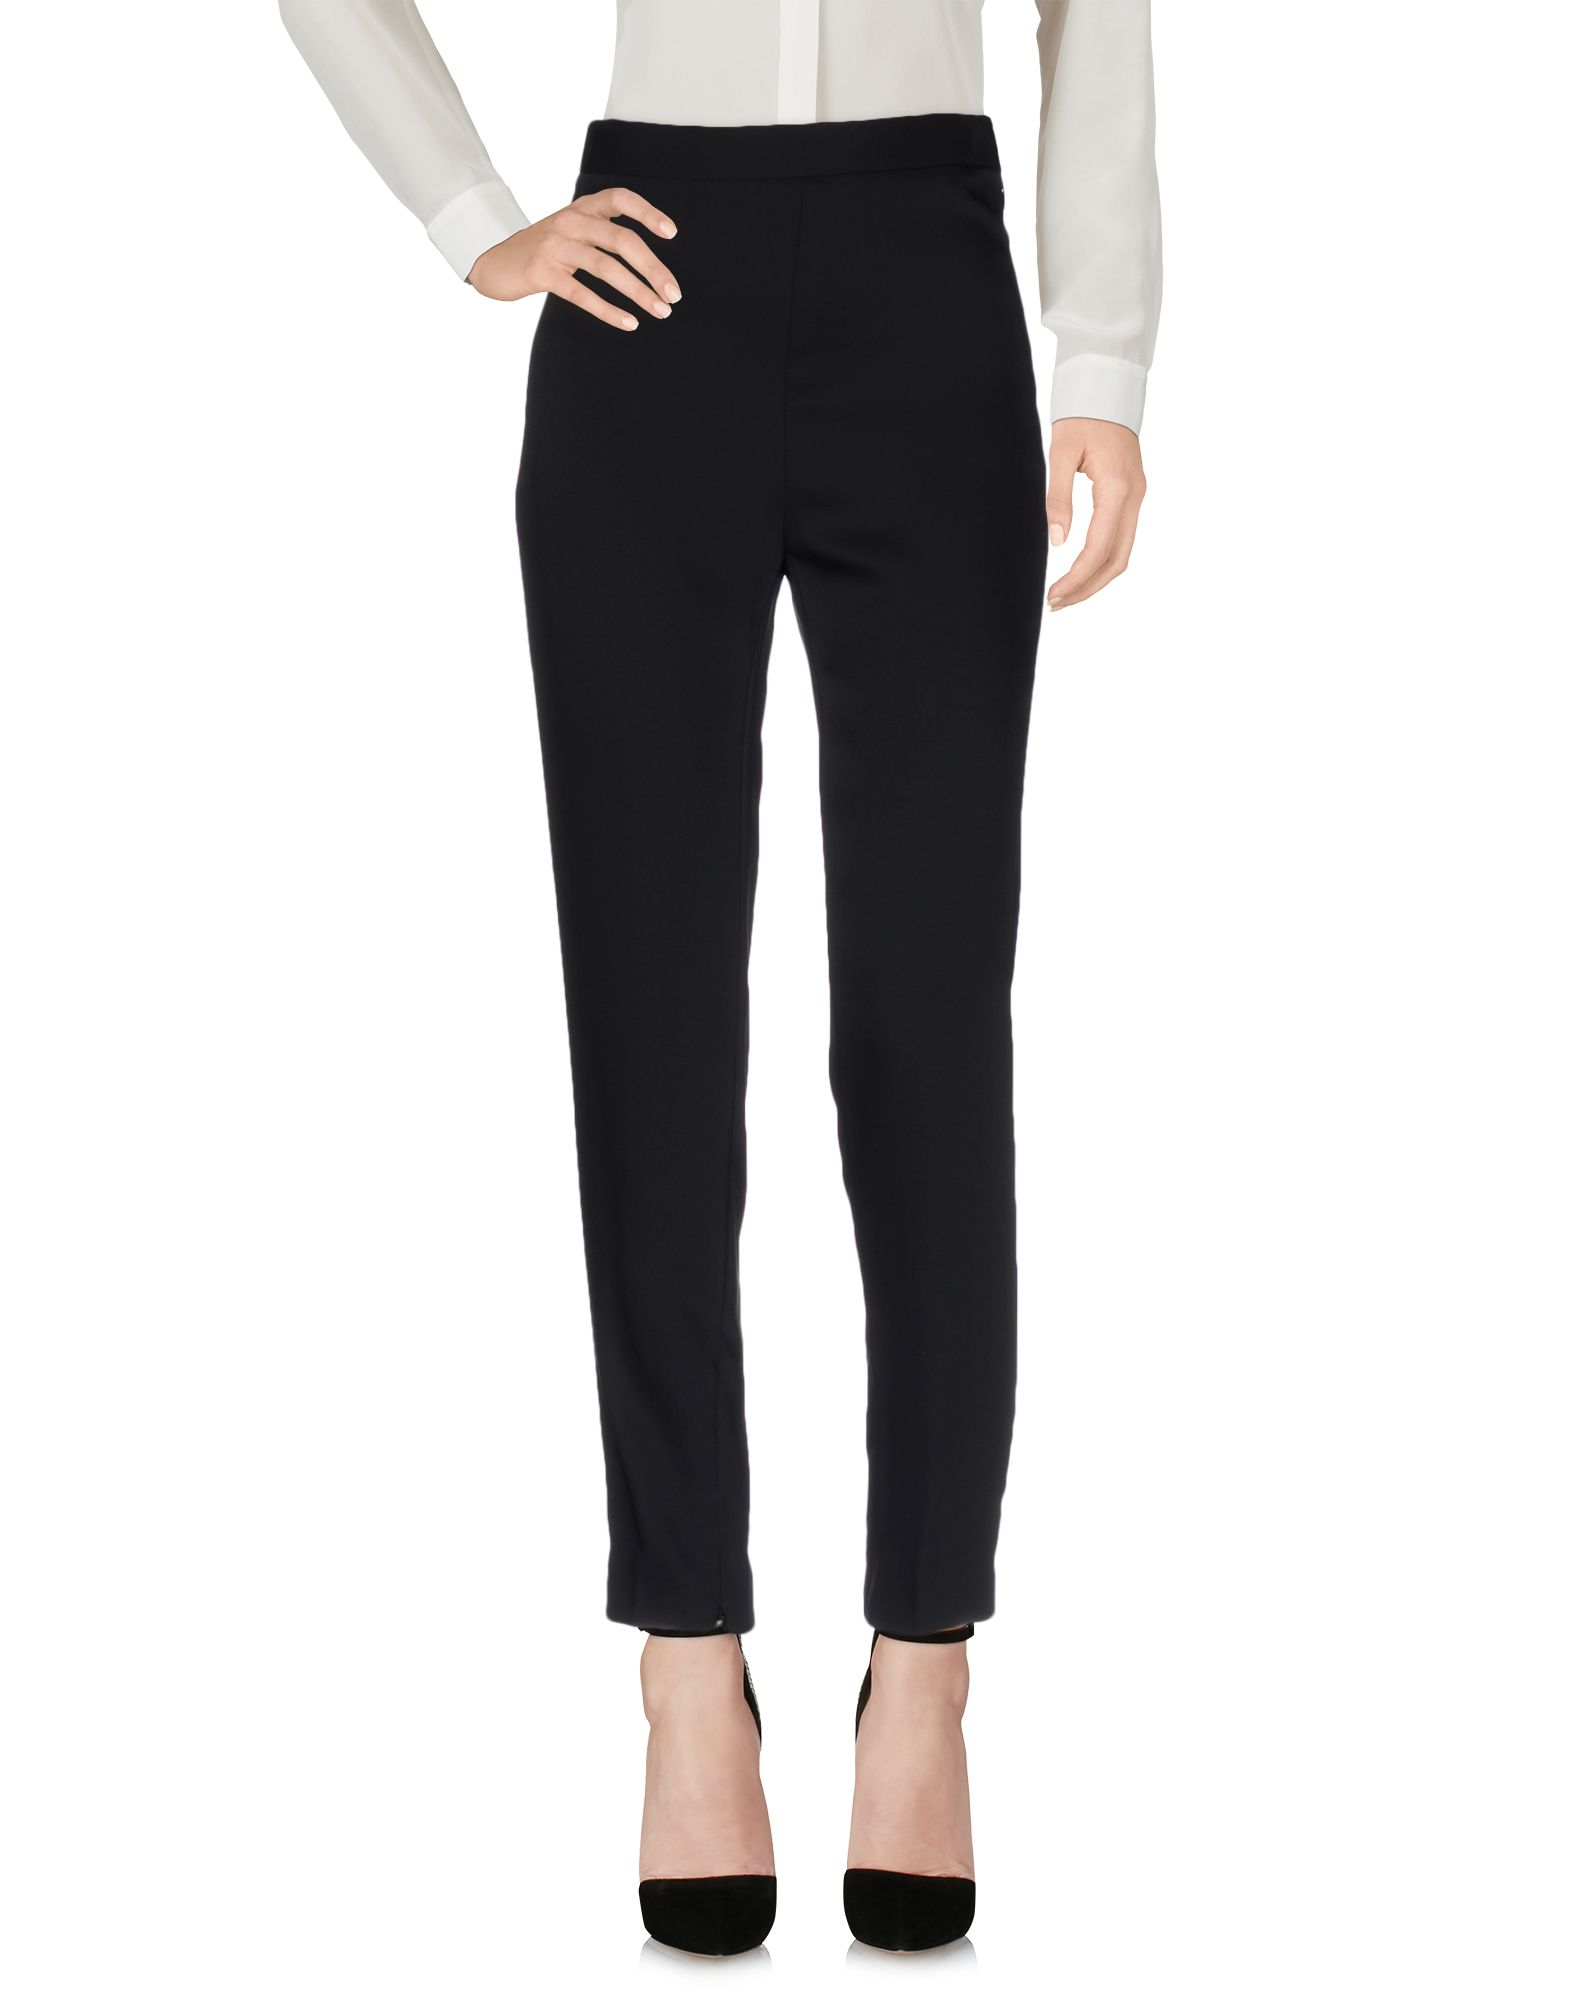 Space Style Concept Casual Pants   Women Space Style Concept Casual Pants   36869885